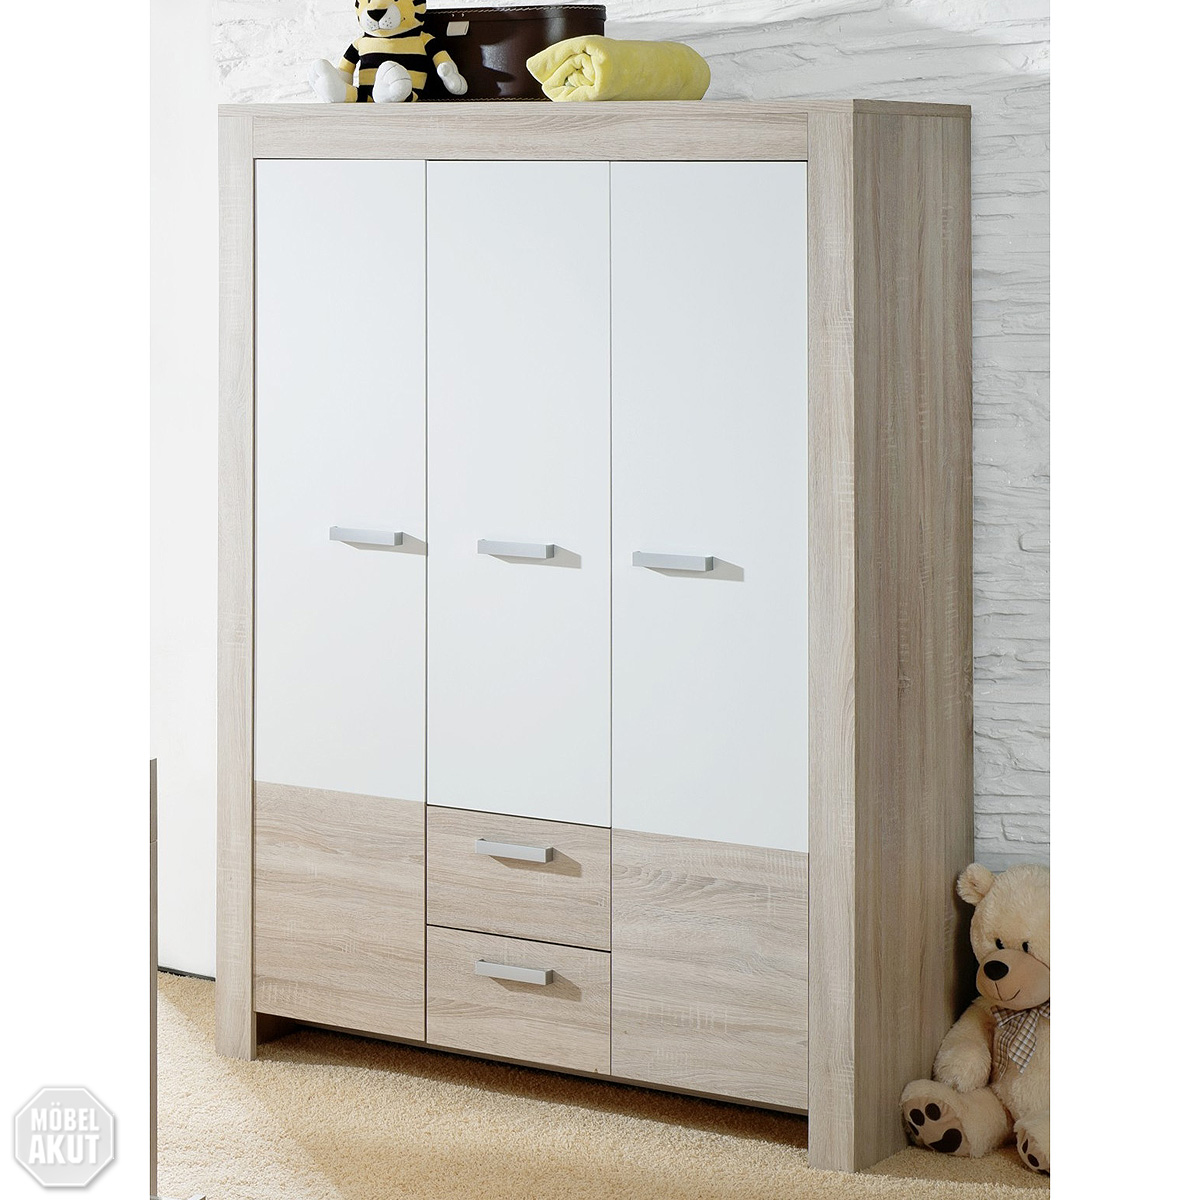 kleiderschrank ben babyzimmer sonoma eiche s gerau wei ebay. Black Bedroom Furniture Sets. Home Design Ideas